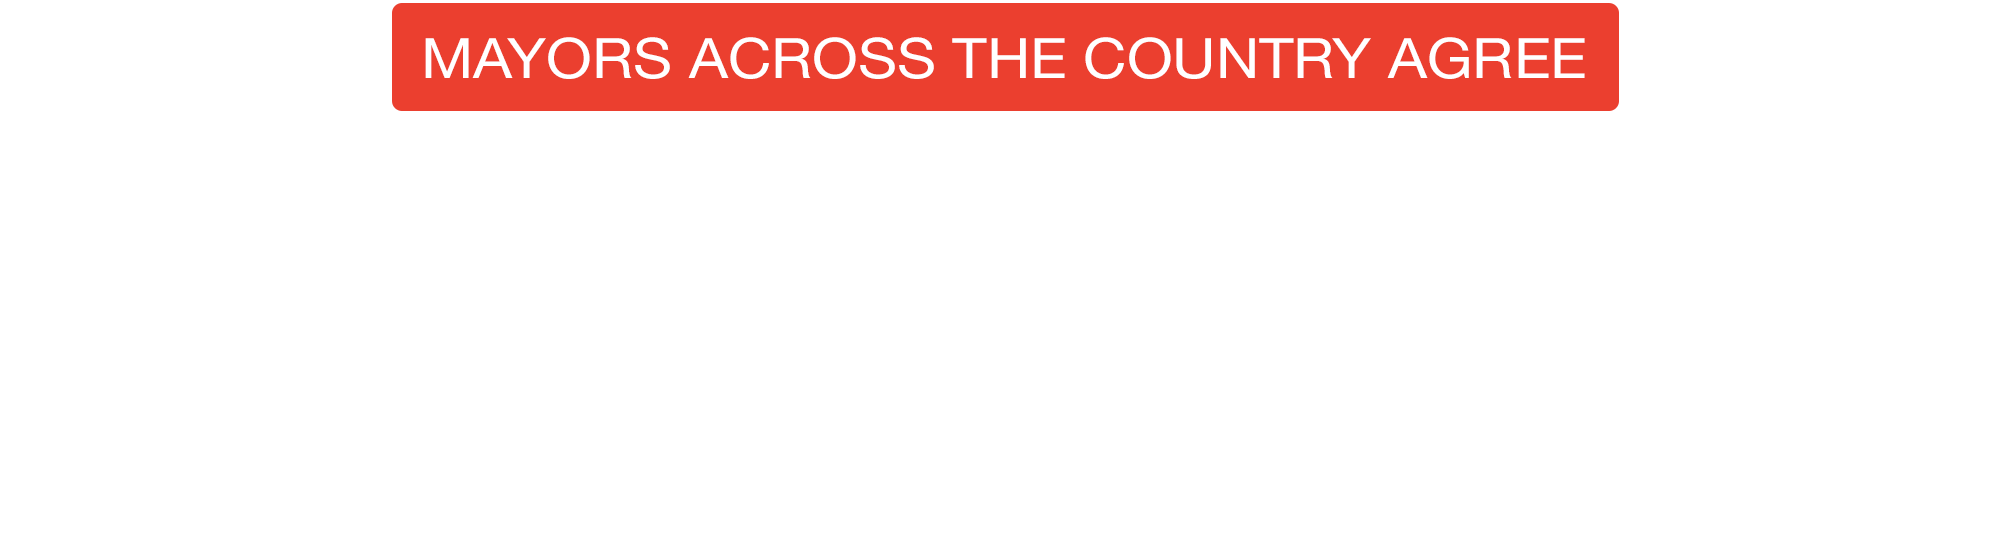 Mayors Across the Country Agree: It's Time to Protect LGBT Americans From Discrimination